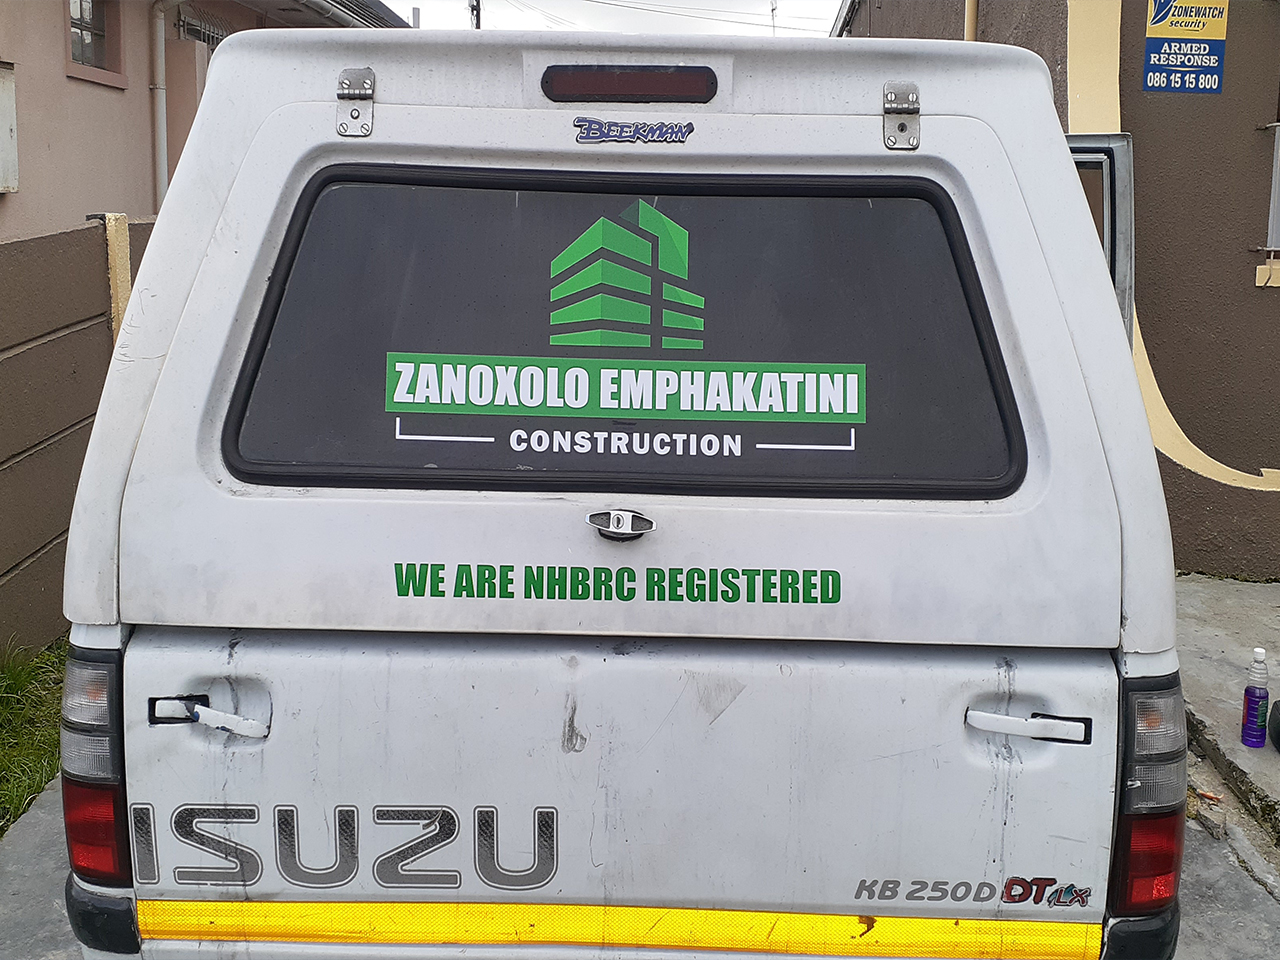 Zanoxolo Emphakatini Construction Vehicle Branding Cut Out Vinyl